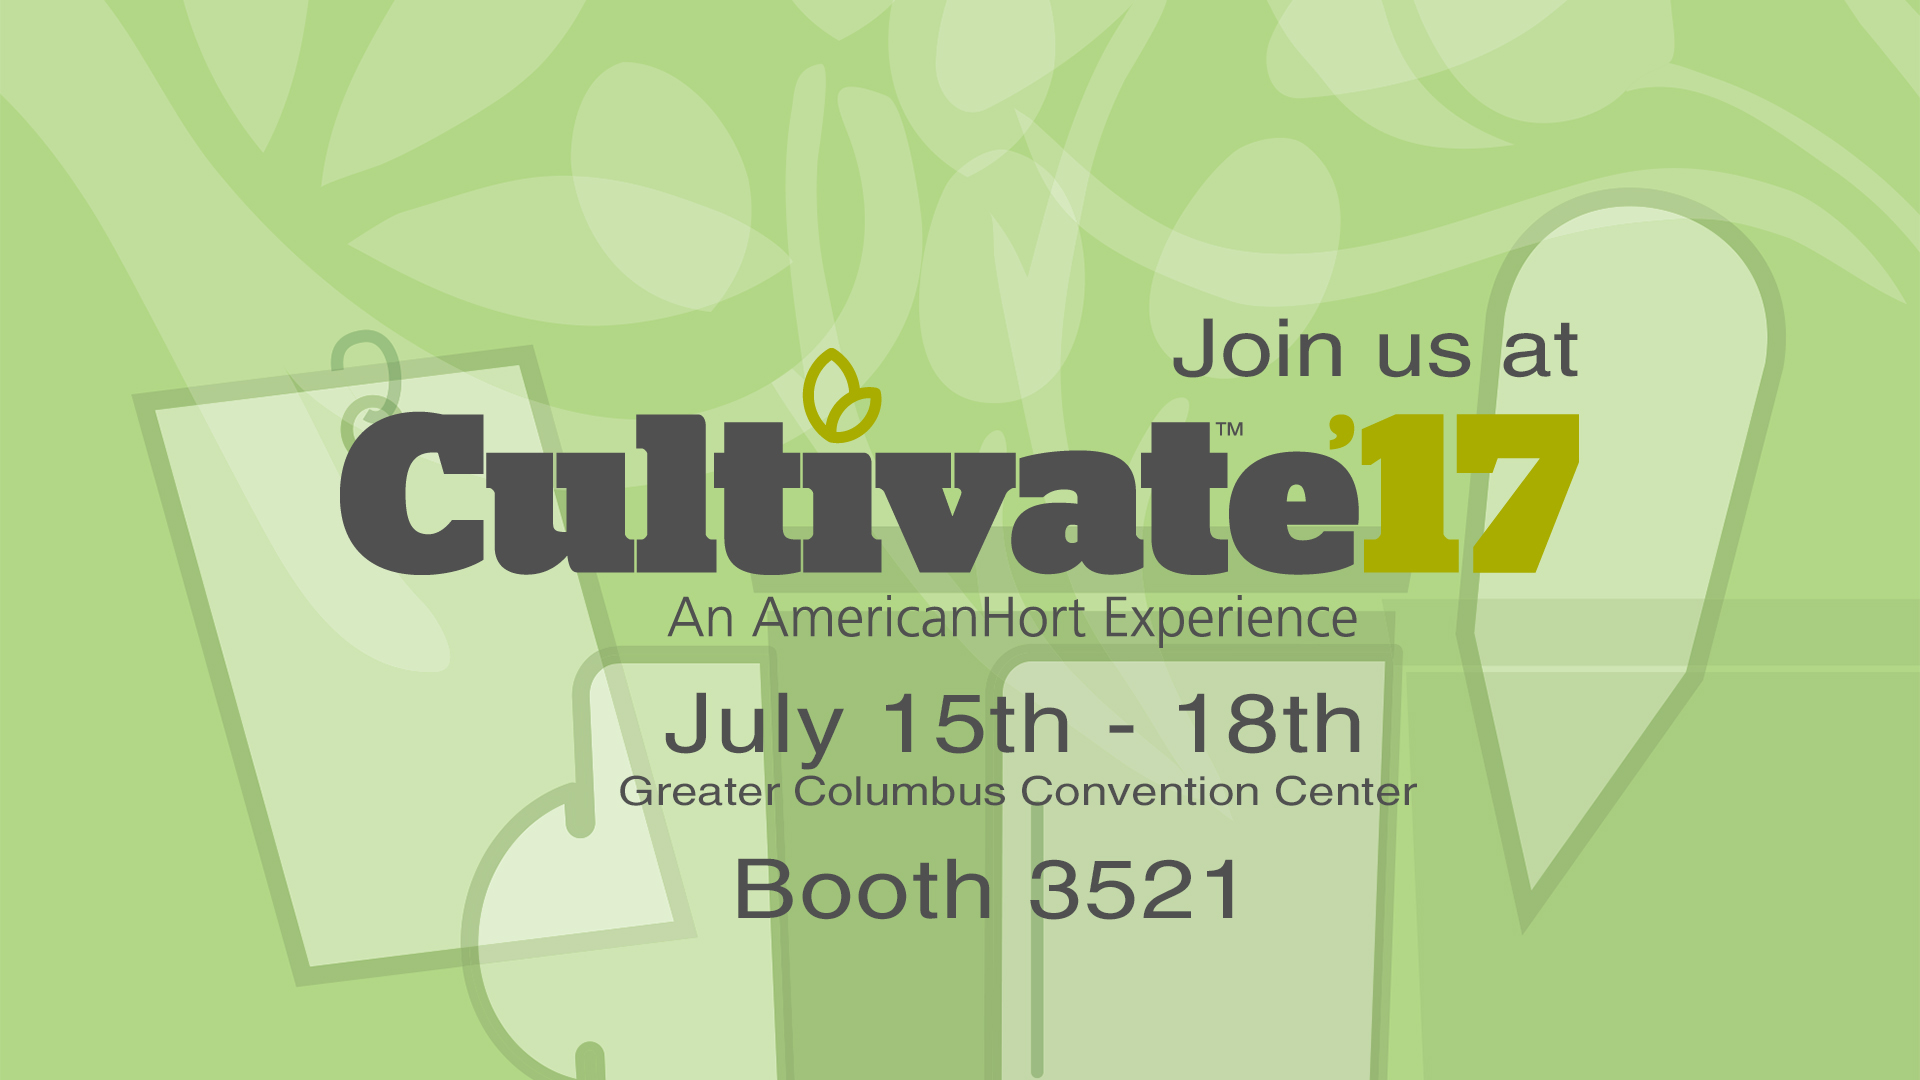 Join Hip Labels at Cultivate 17, Booth 3521